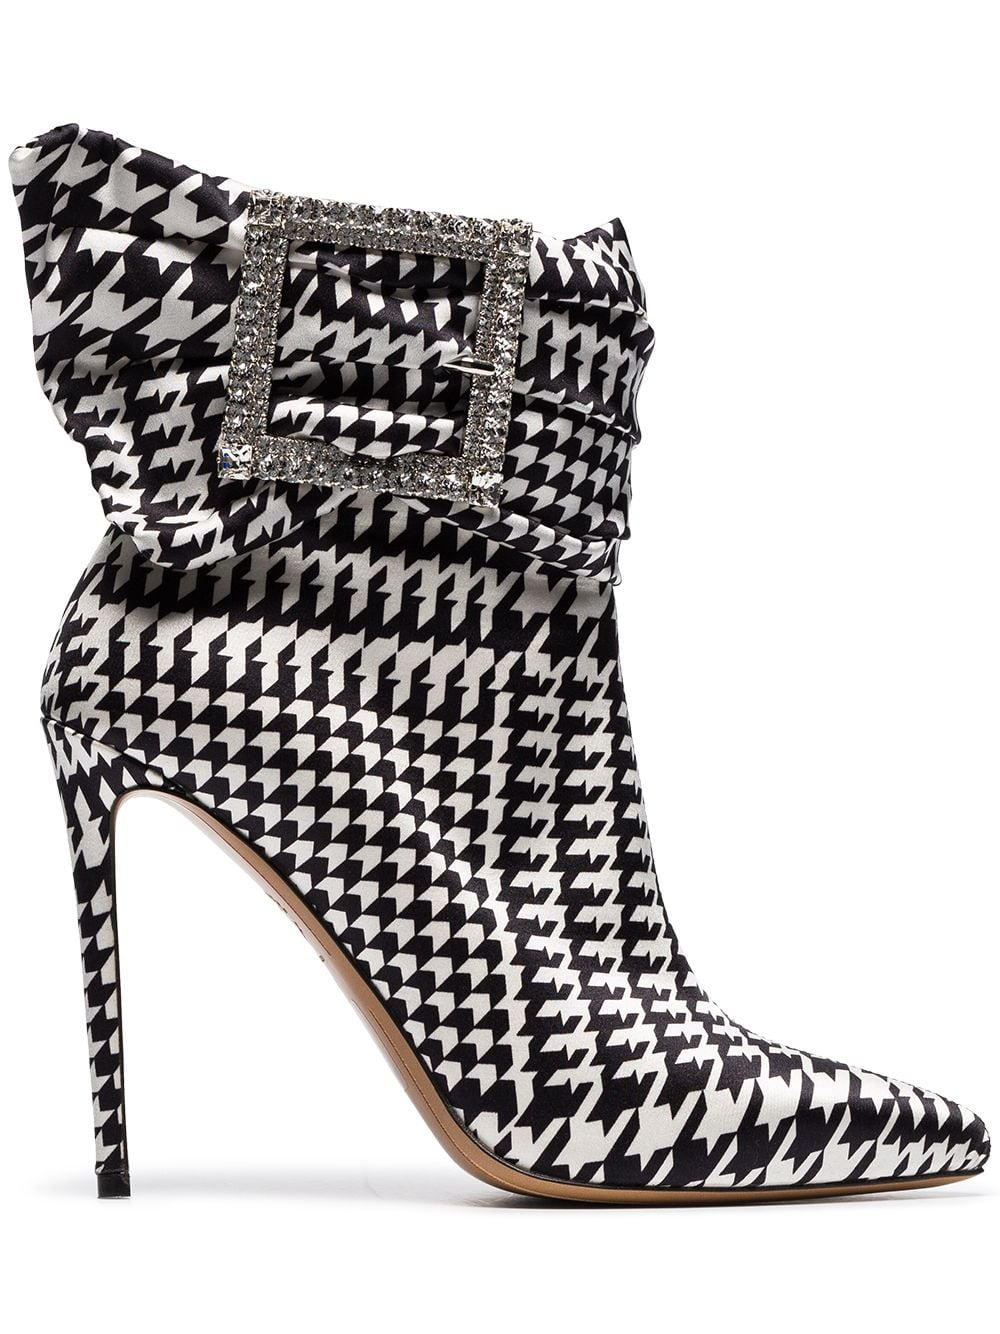 ecffe711778 Alexandre Vauthier black and white Yasmin 100 houndstooth print ...